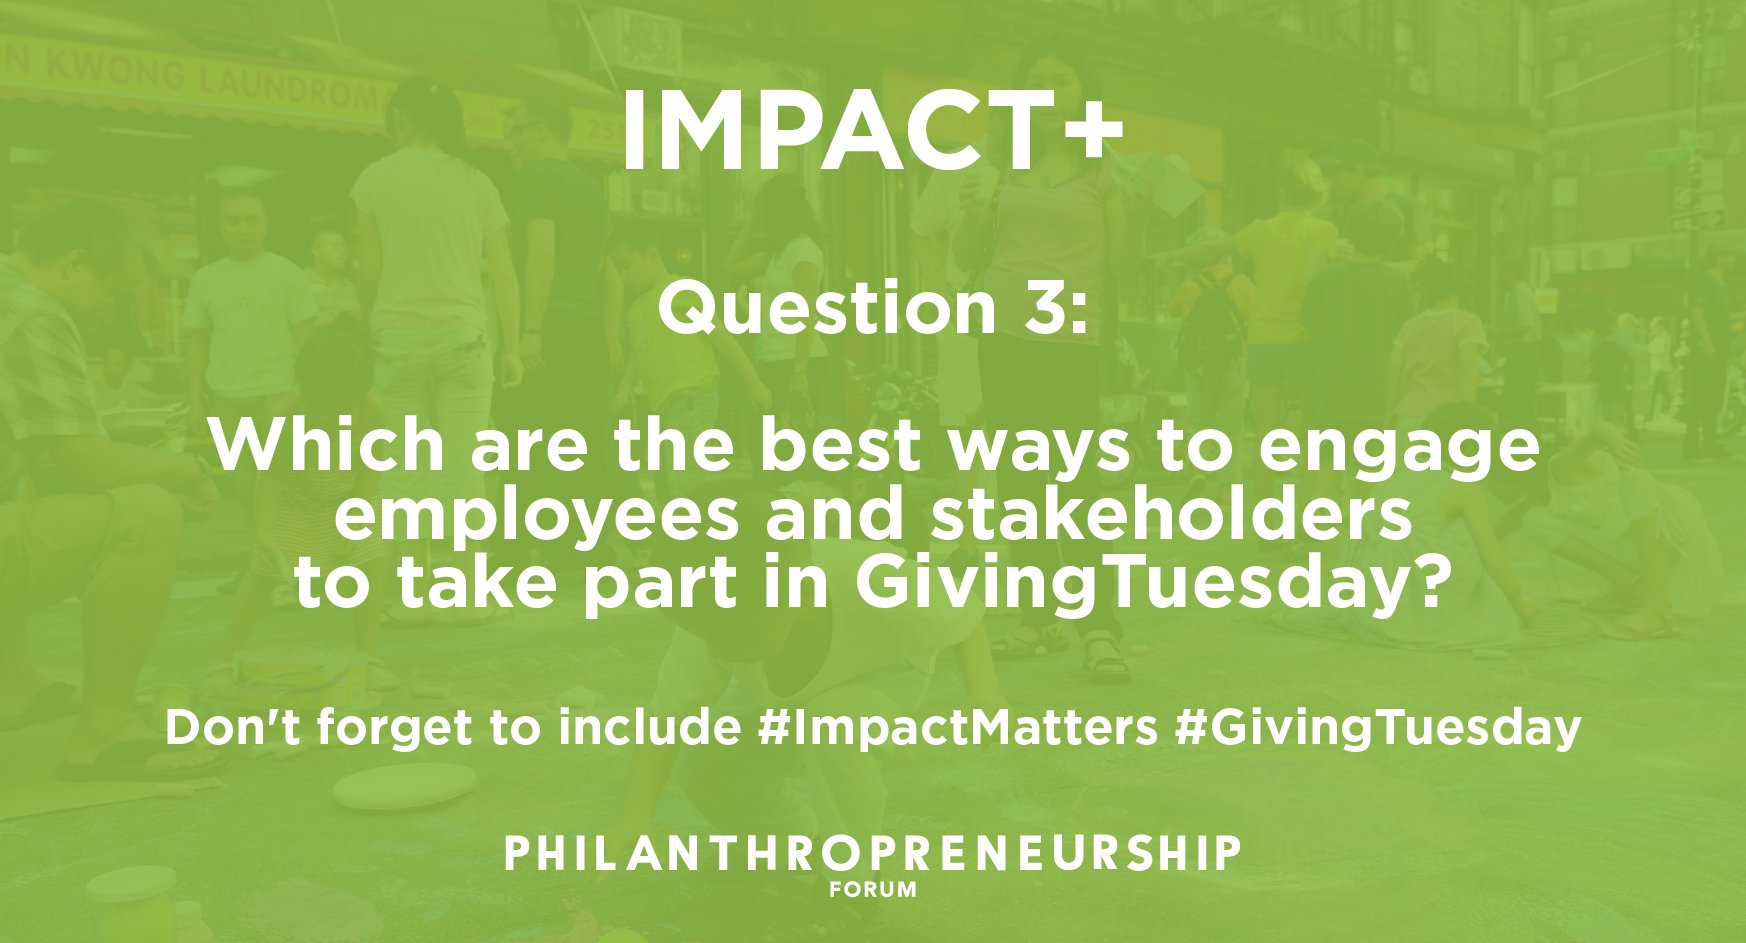 Q3: Which are the best ways to engage employees and stakeholders to take part in #GivingTuesday? #ImpactMatters https://t.co/xoTAR3wLyb